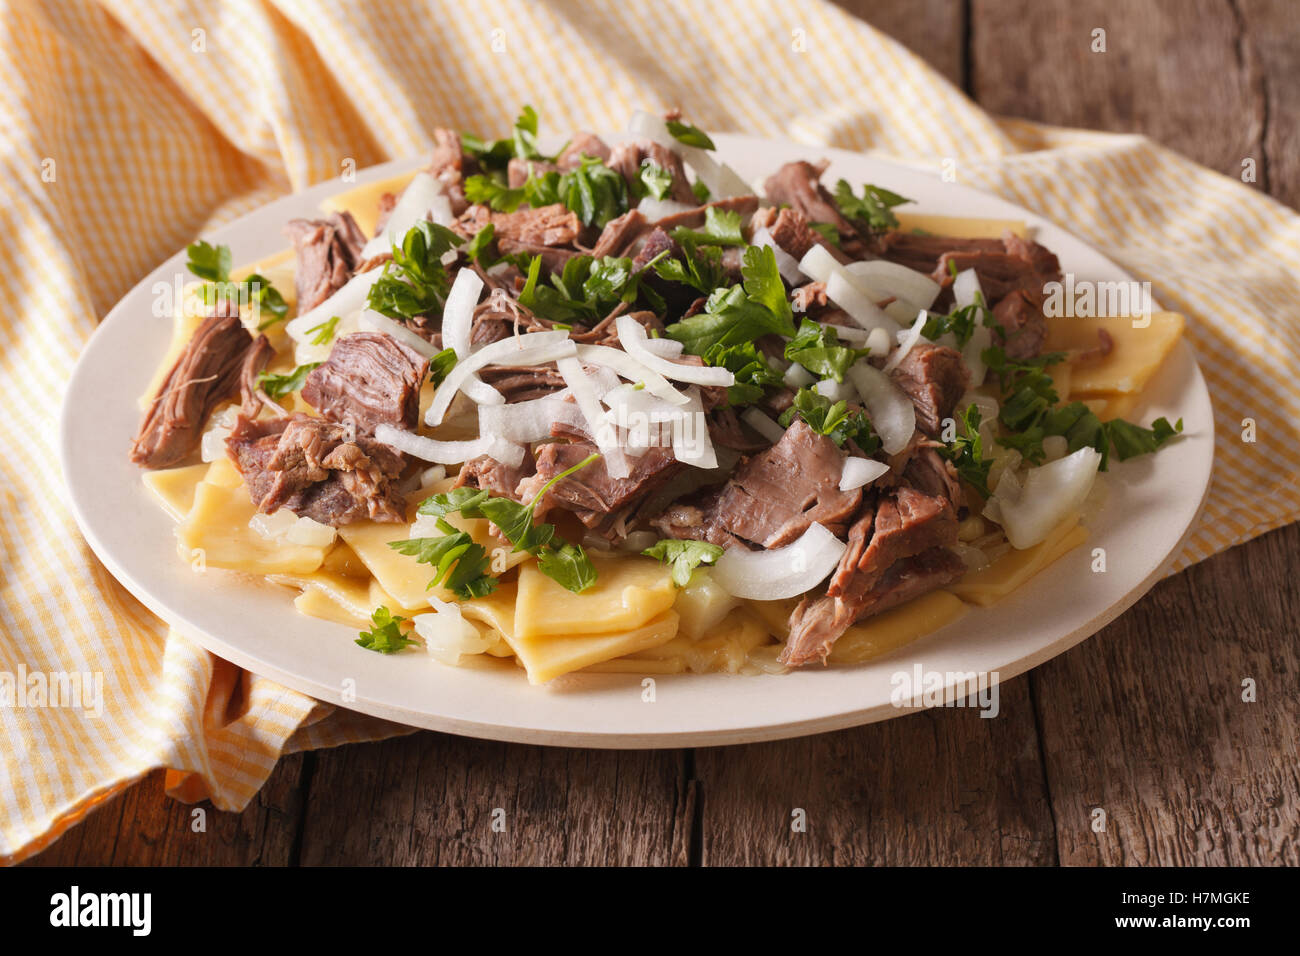 Beshbarmak dish: noodles with lamb and onion close-up on a plate on the table. horizontal - Stock Image